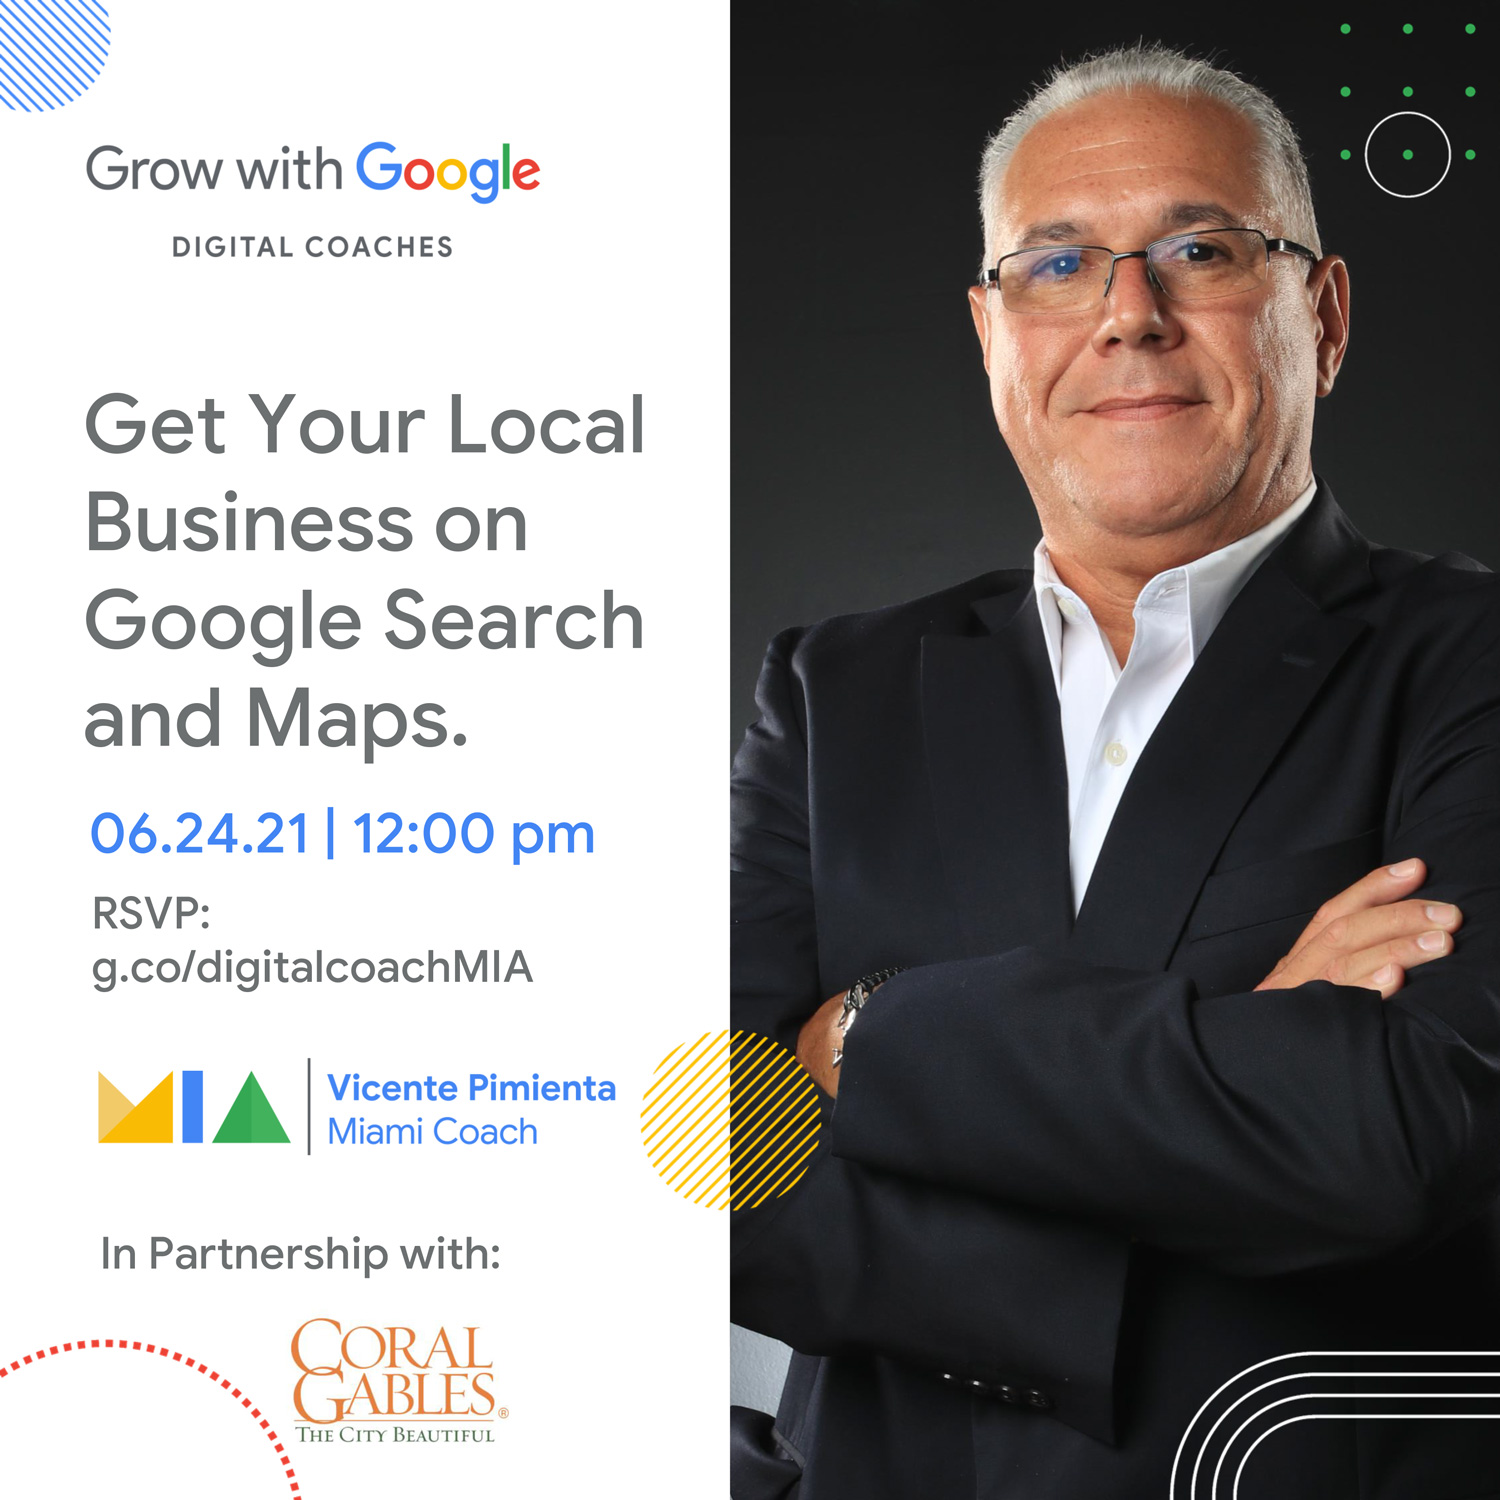 It's time to put your business on Google Maps